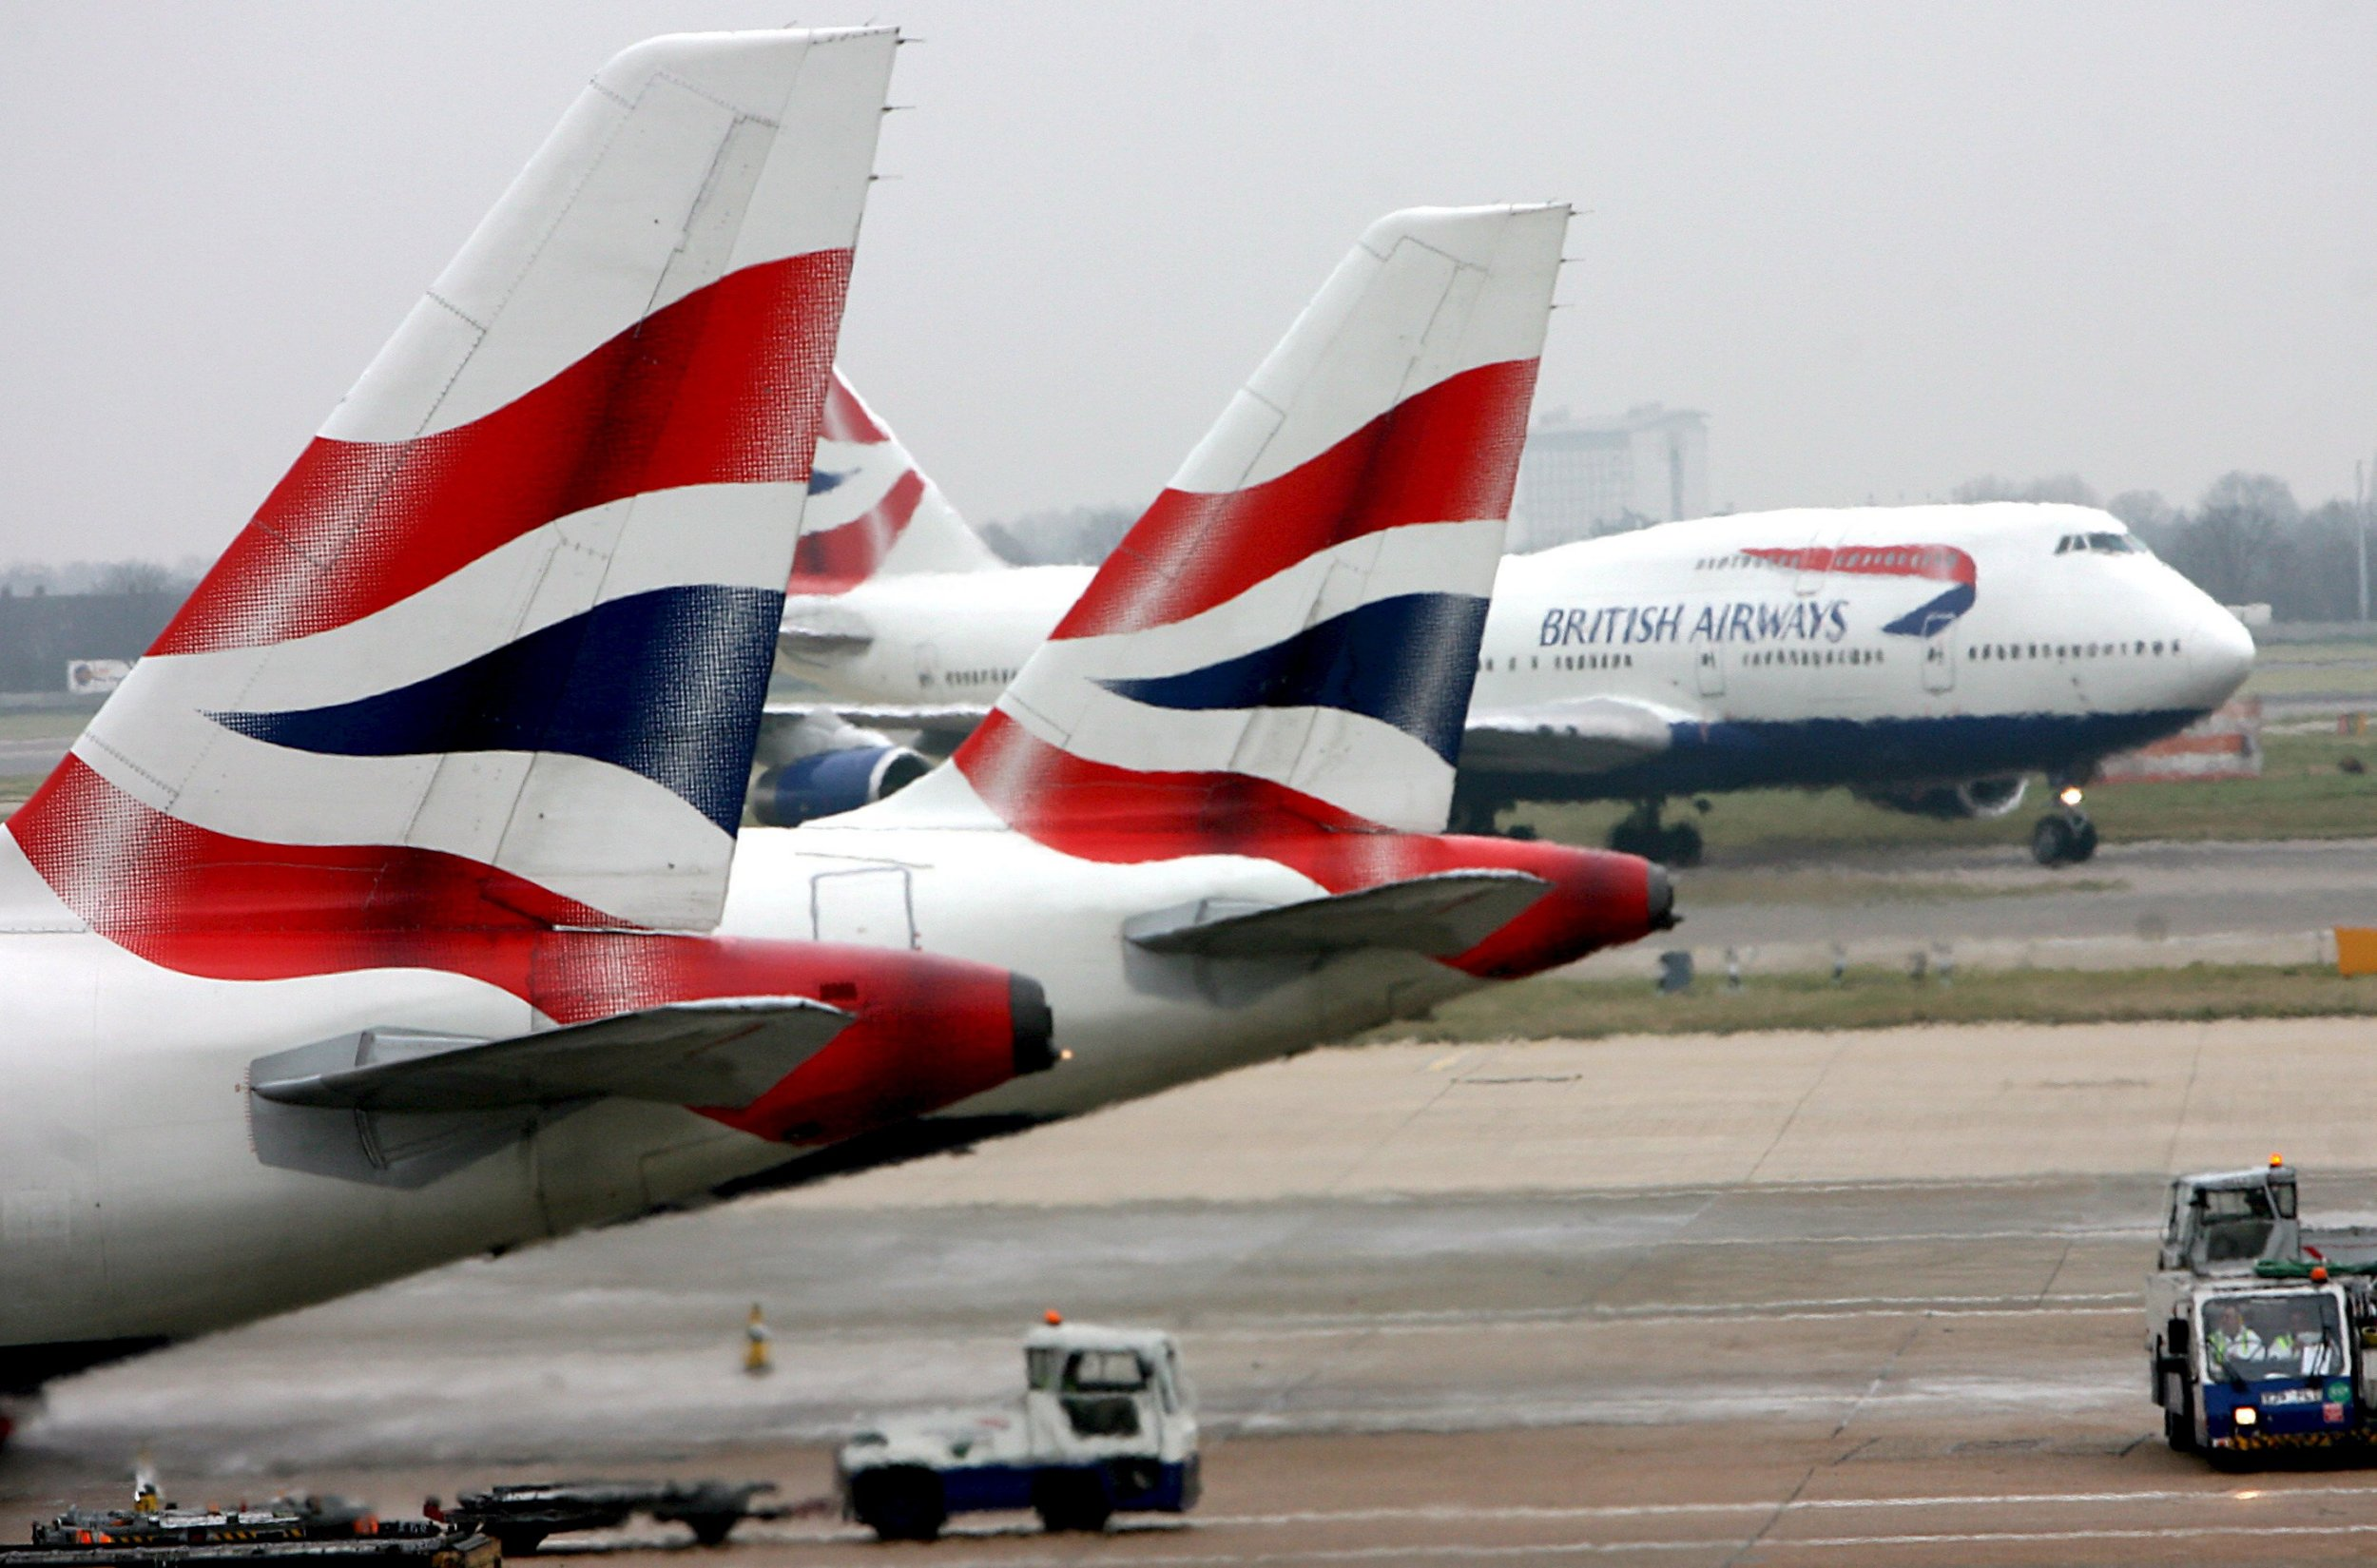 epa05810279 (FILE) - A file picture dated 16 December 2007 shows British Airways aircrafts at Heathrow Airport in London. International Airlines Group (IAG), Europe's second largest air carrier and owner of Aer Lingus, British Airways, Iberia and Vueling, will publish their earnings report on 24 February 2017. EPA/ANDY RAIN